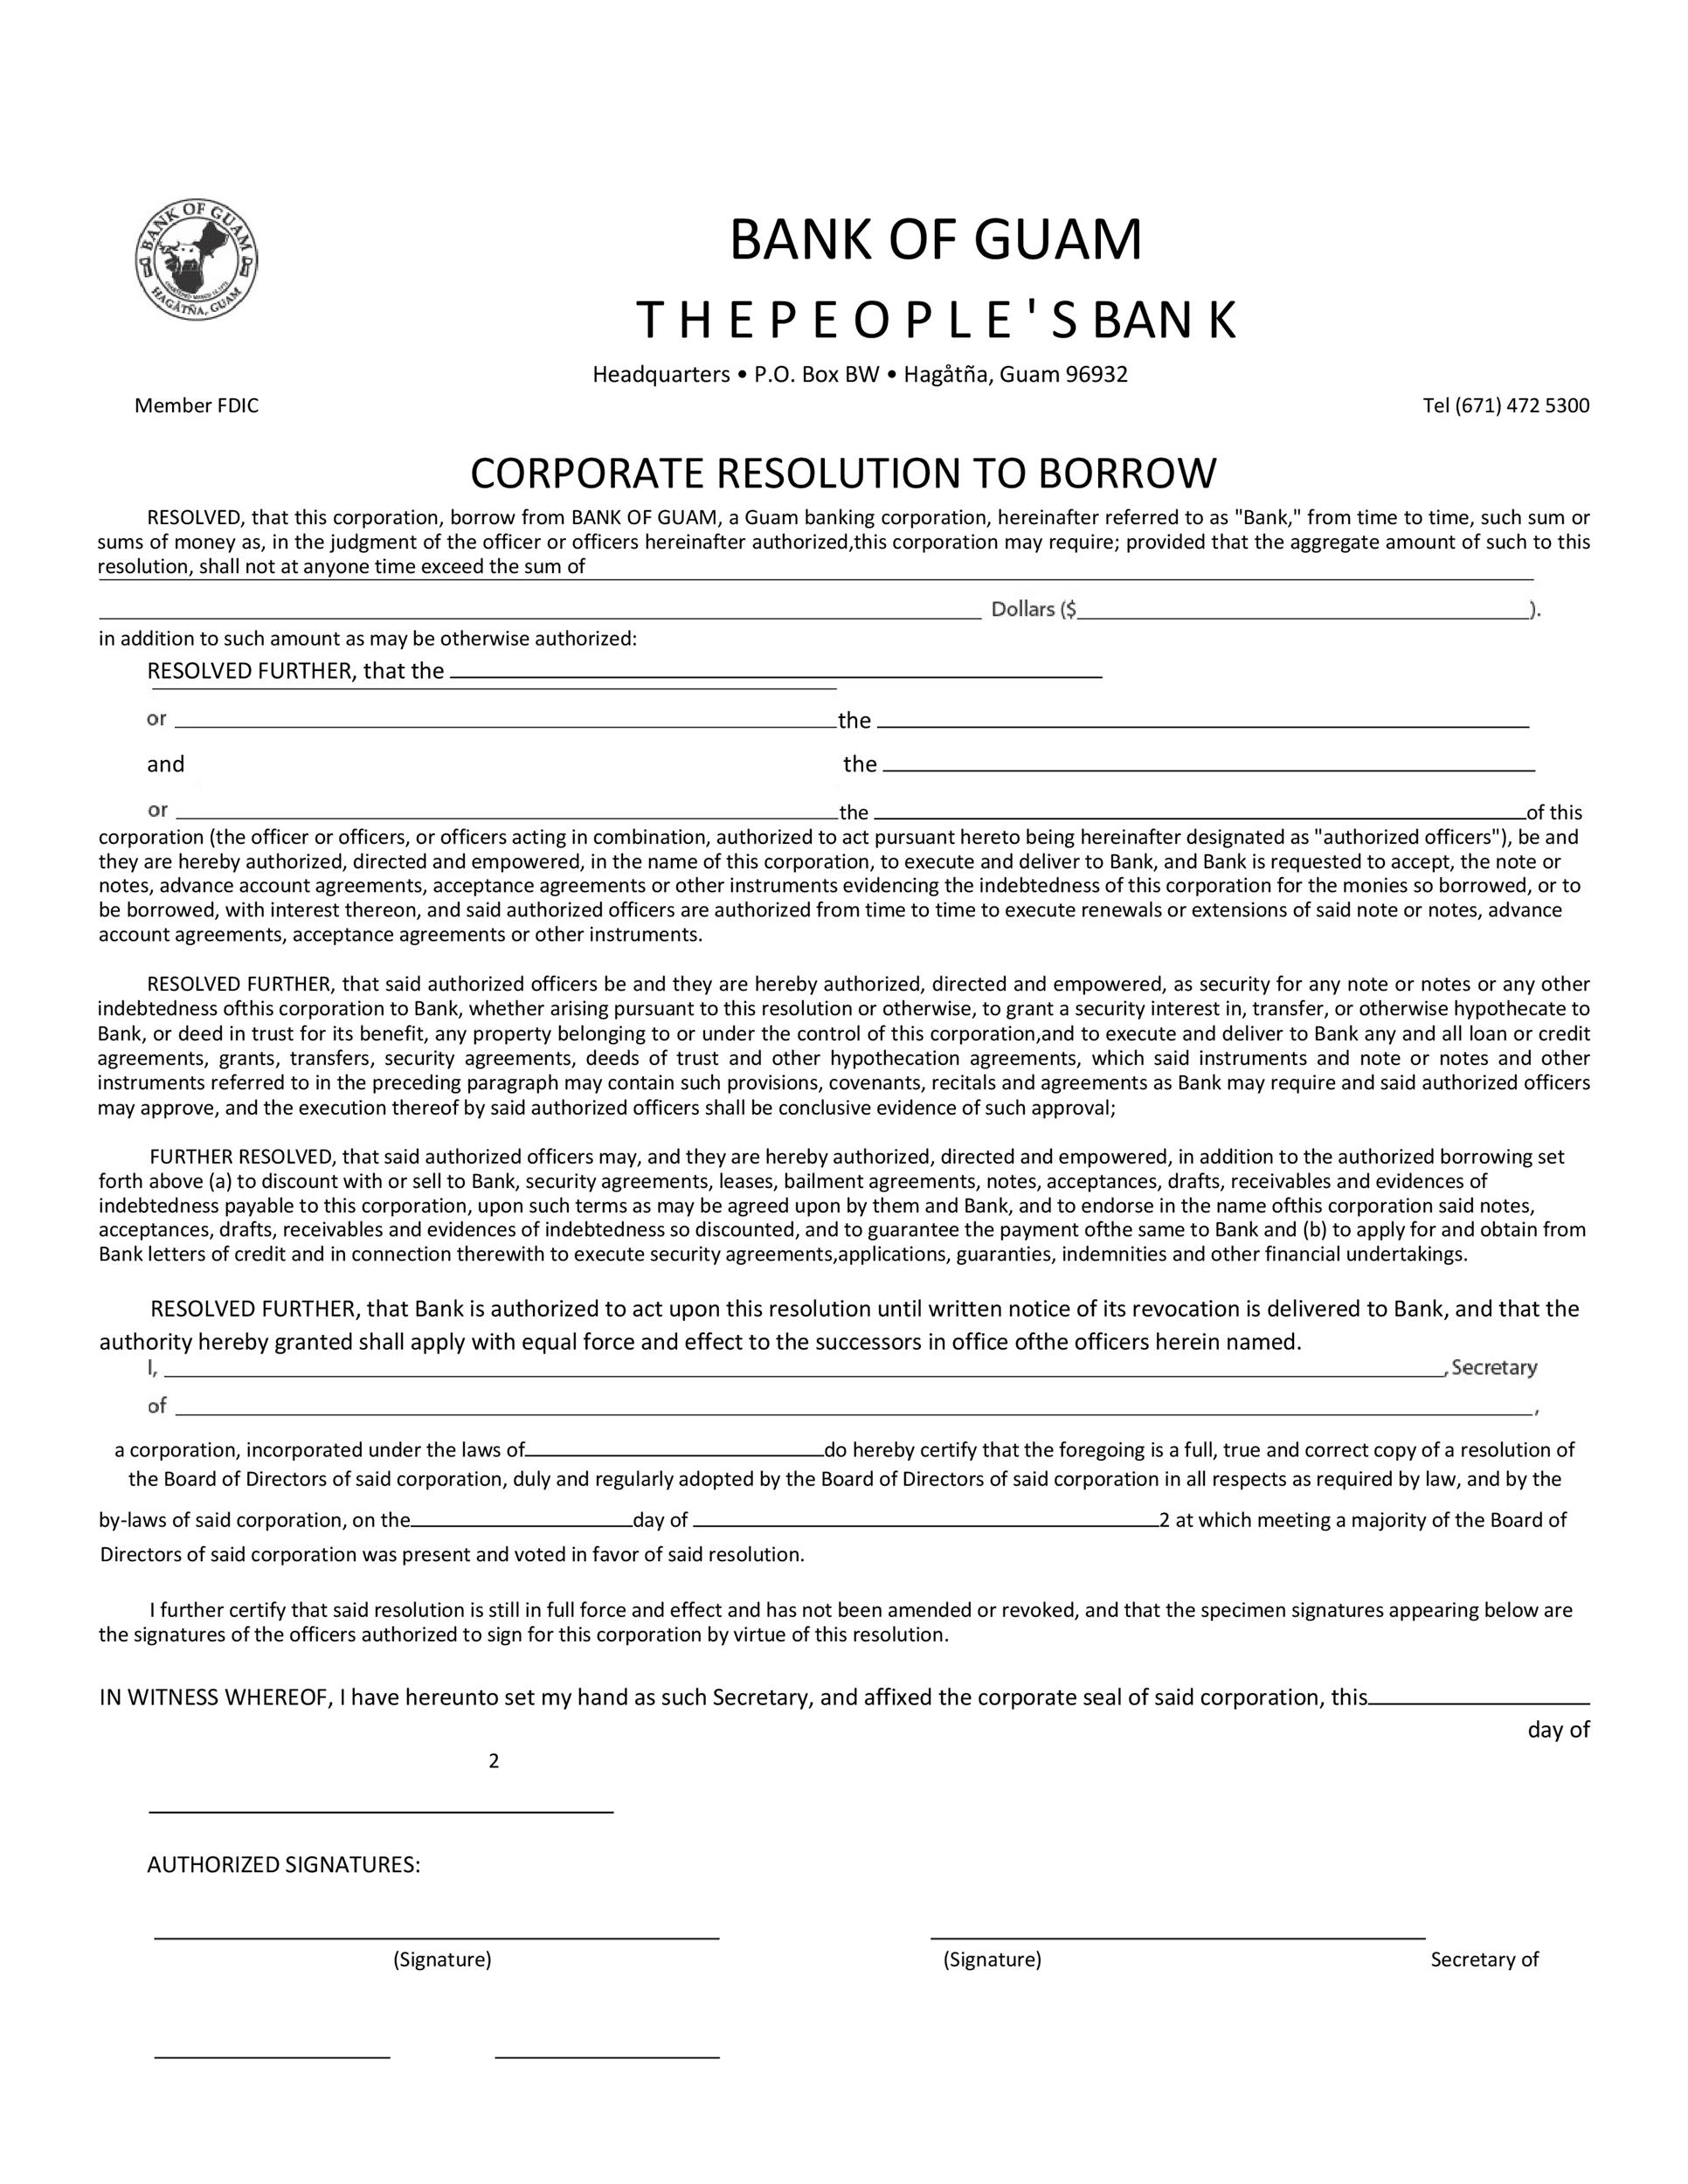 37 Printable Corporate Resolution Forms - Template Lab